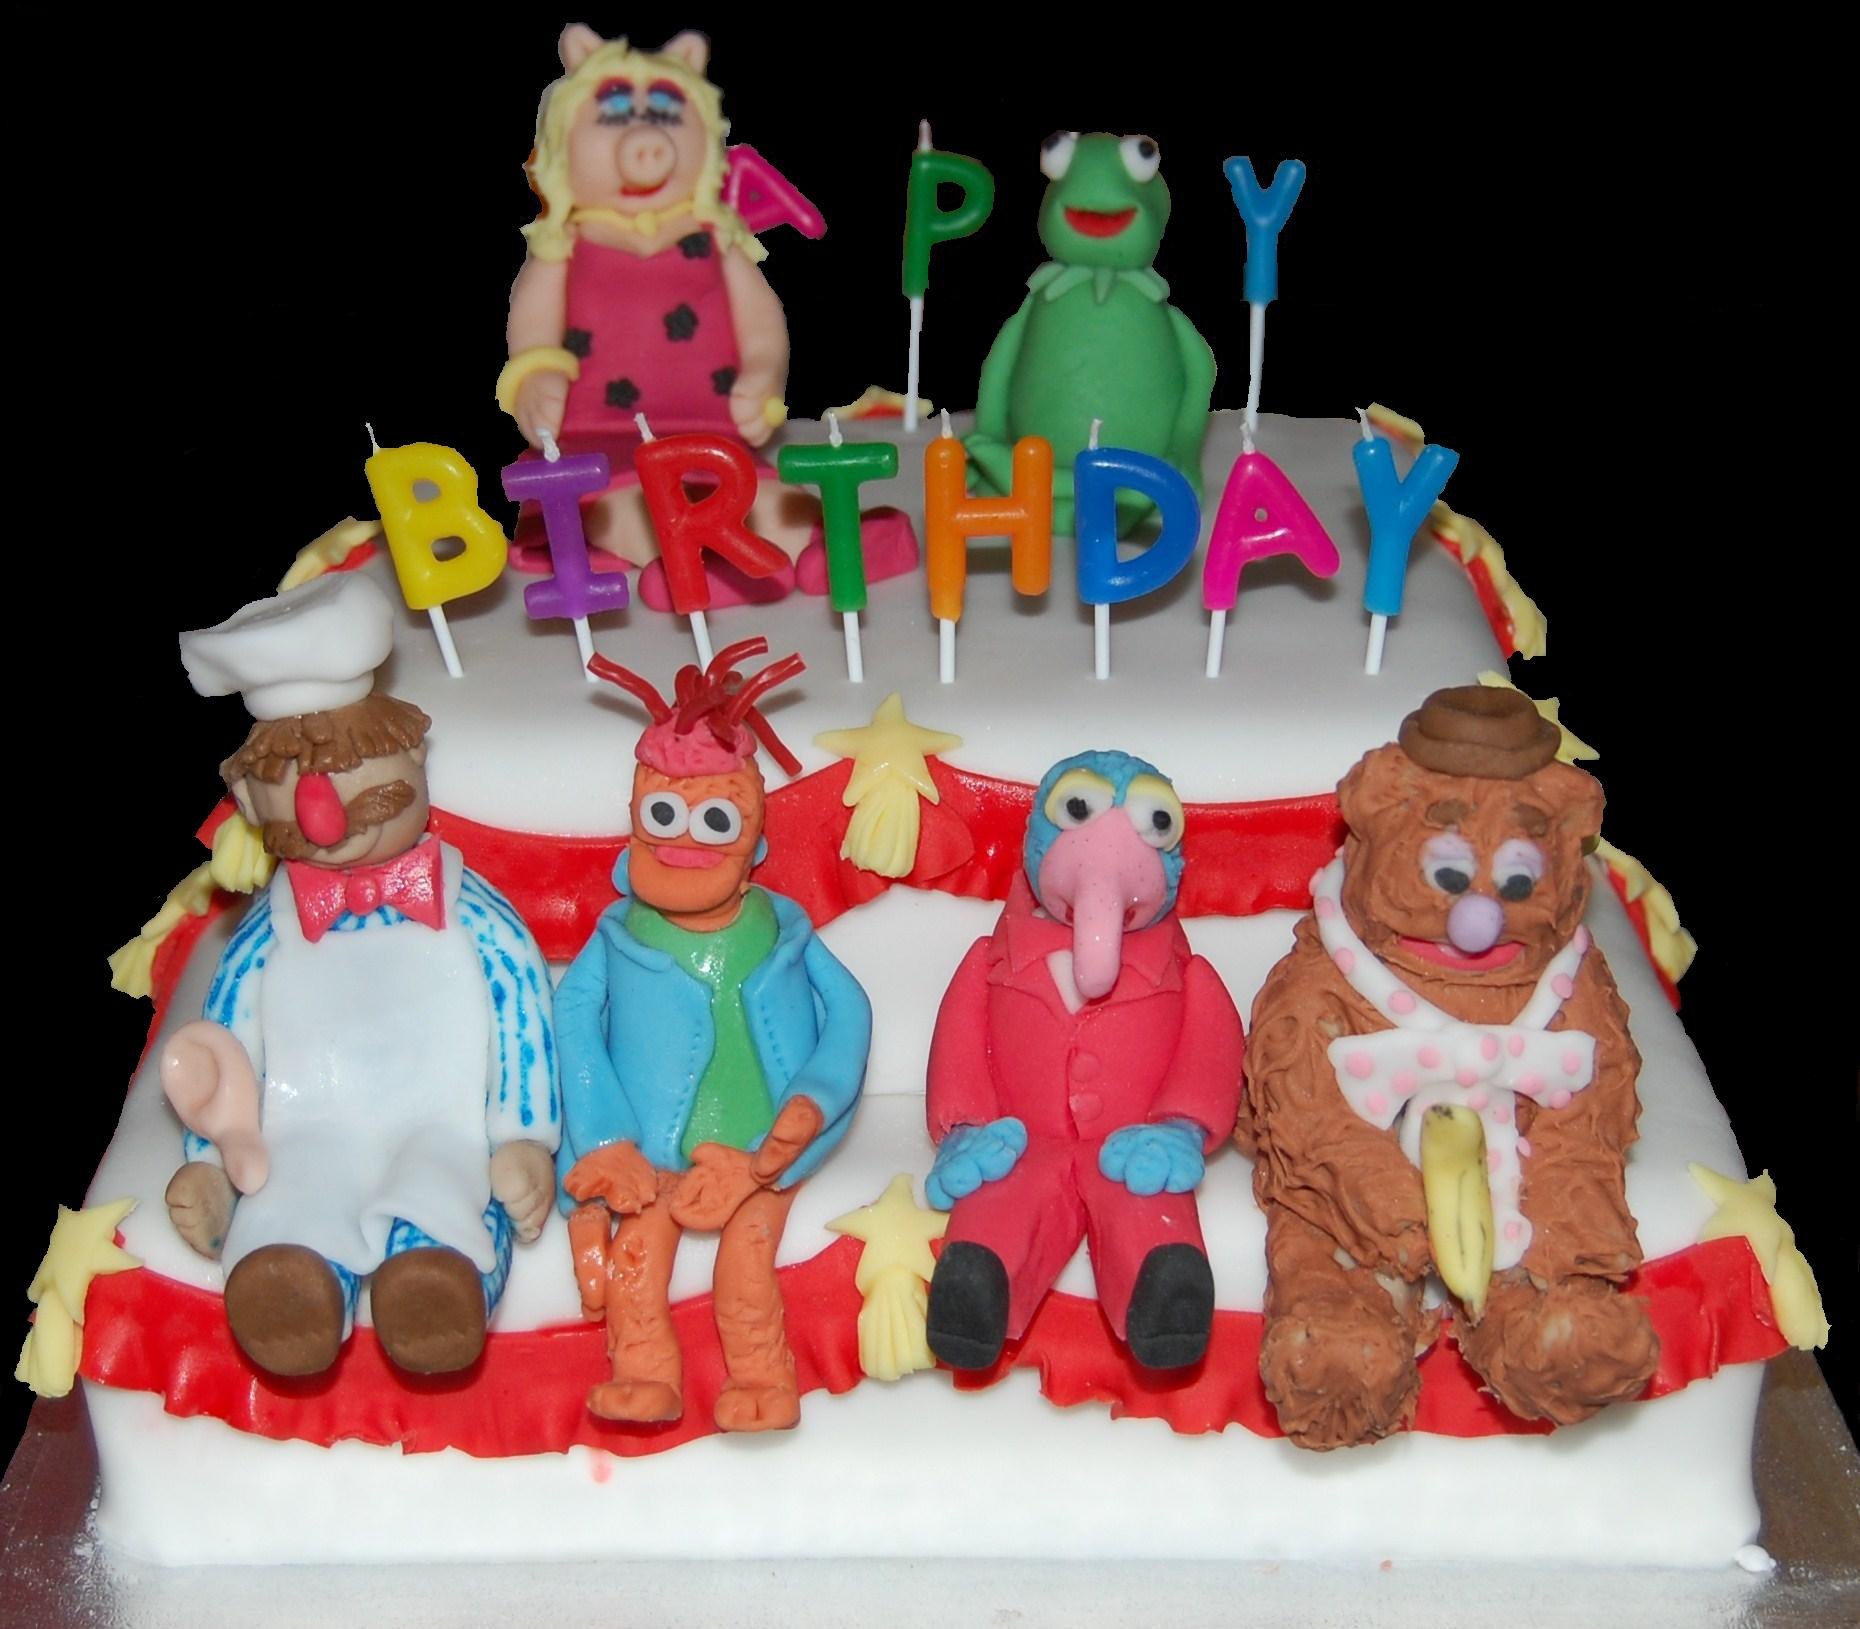 Astounding Muppets Birthday Cake With Kermit Miss Piggy Gonzo Fozzie Bear Funny Birthday Cards Online Sheoxdamsfinfo